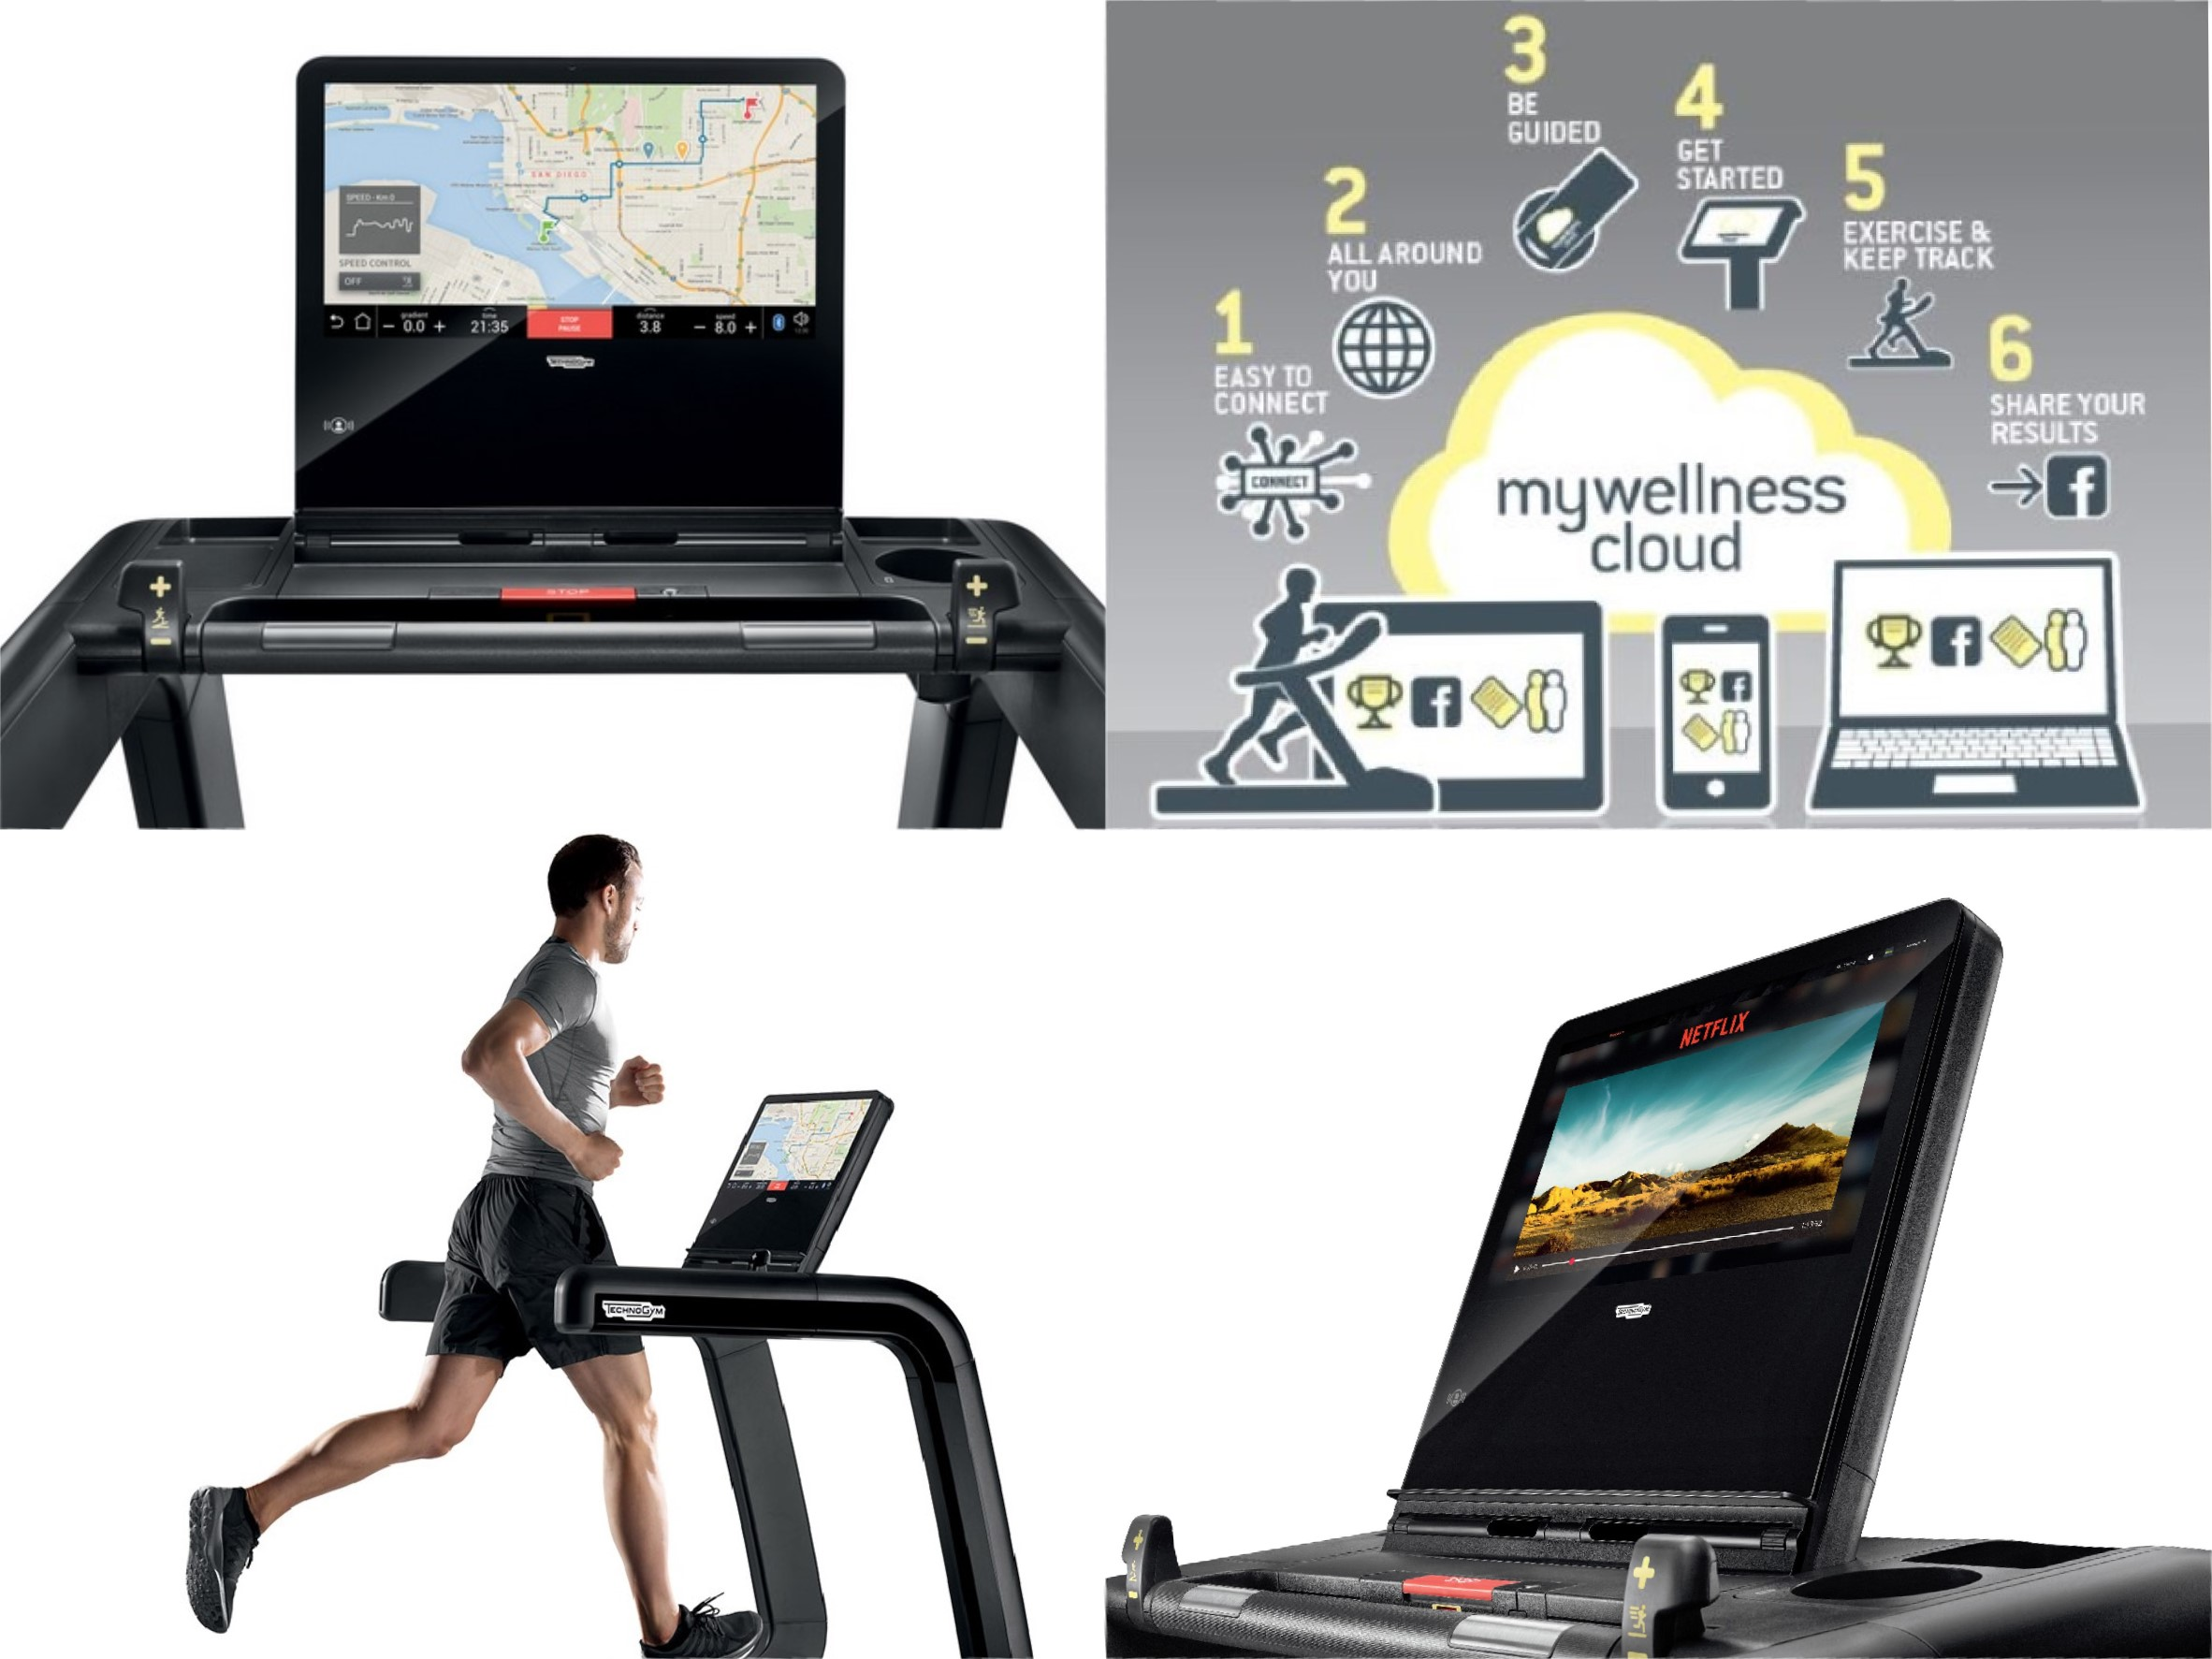 Fitenss 2.0 - The Future of Fitness